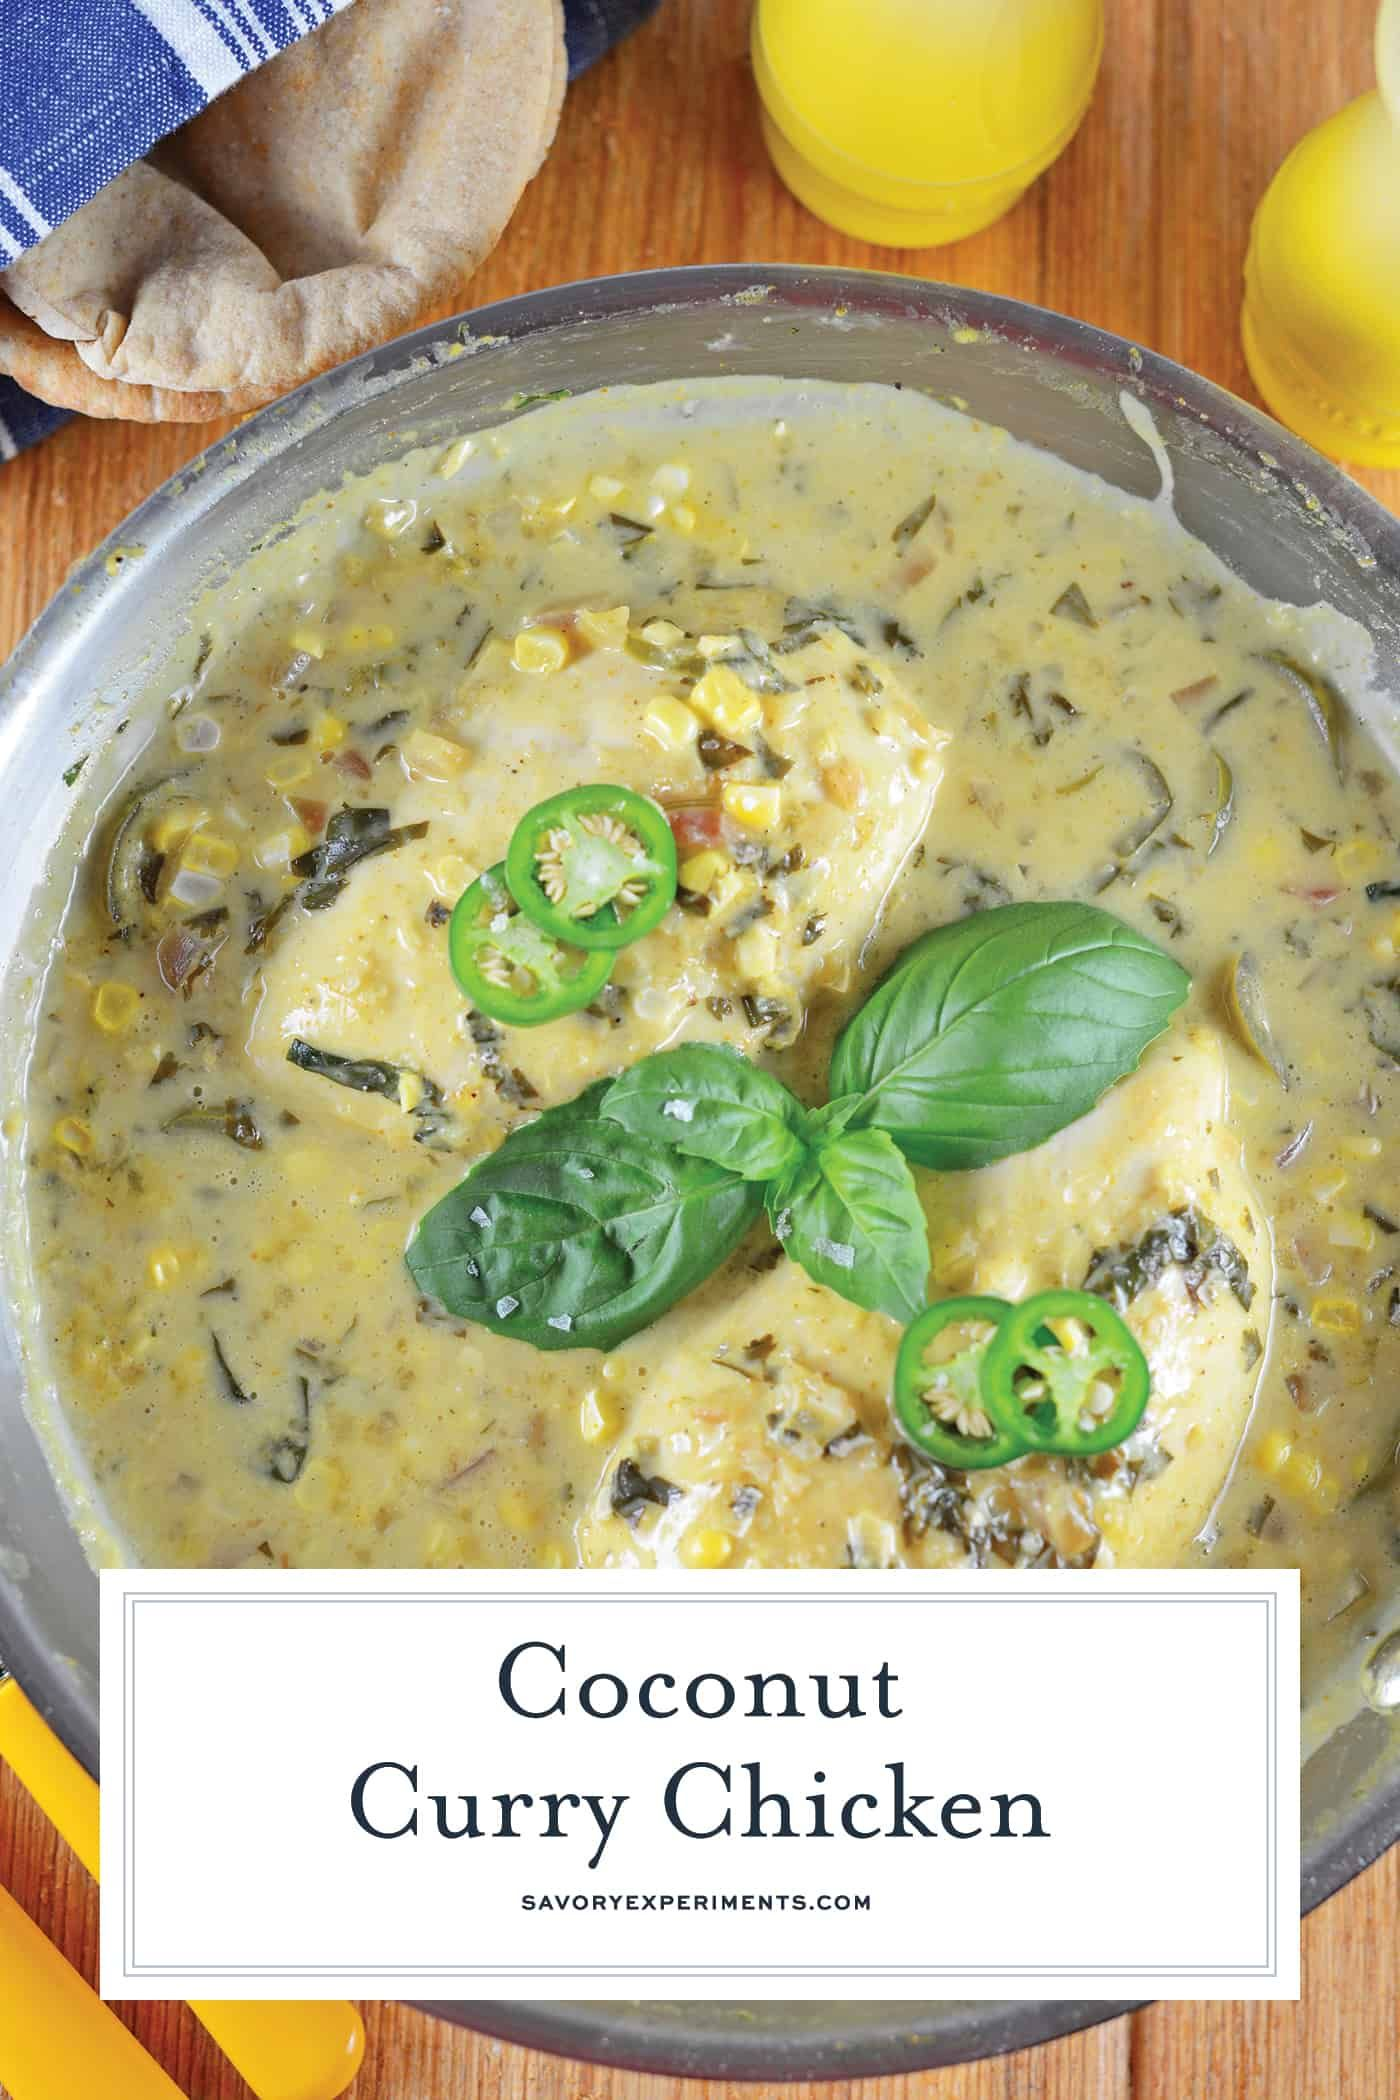 Coconut Chicken Curry Is An Easy Classic Indian Recipe Using Only